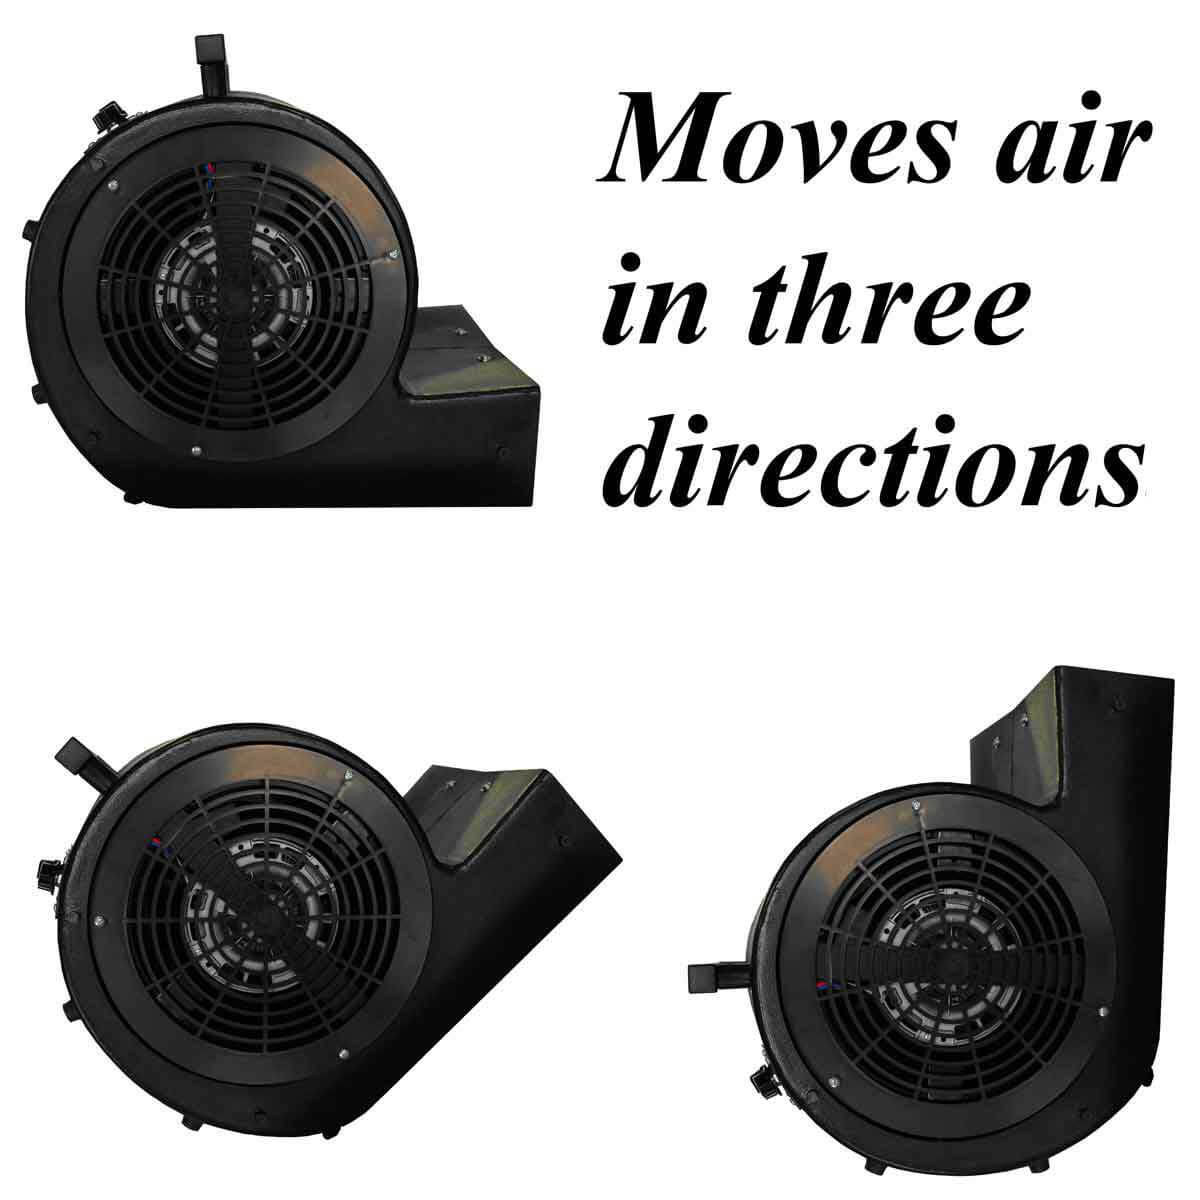 Hawk Industrial Blower Moves Air in Three Directions